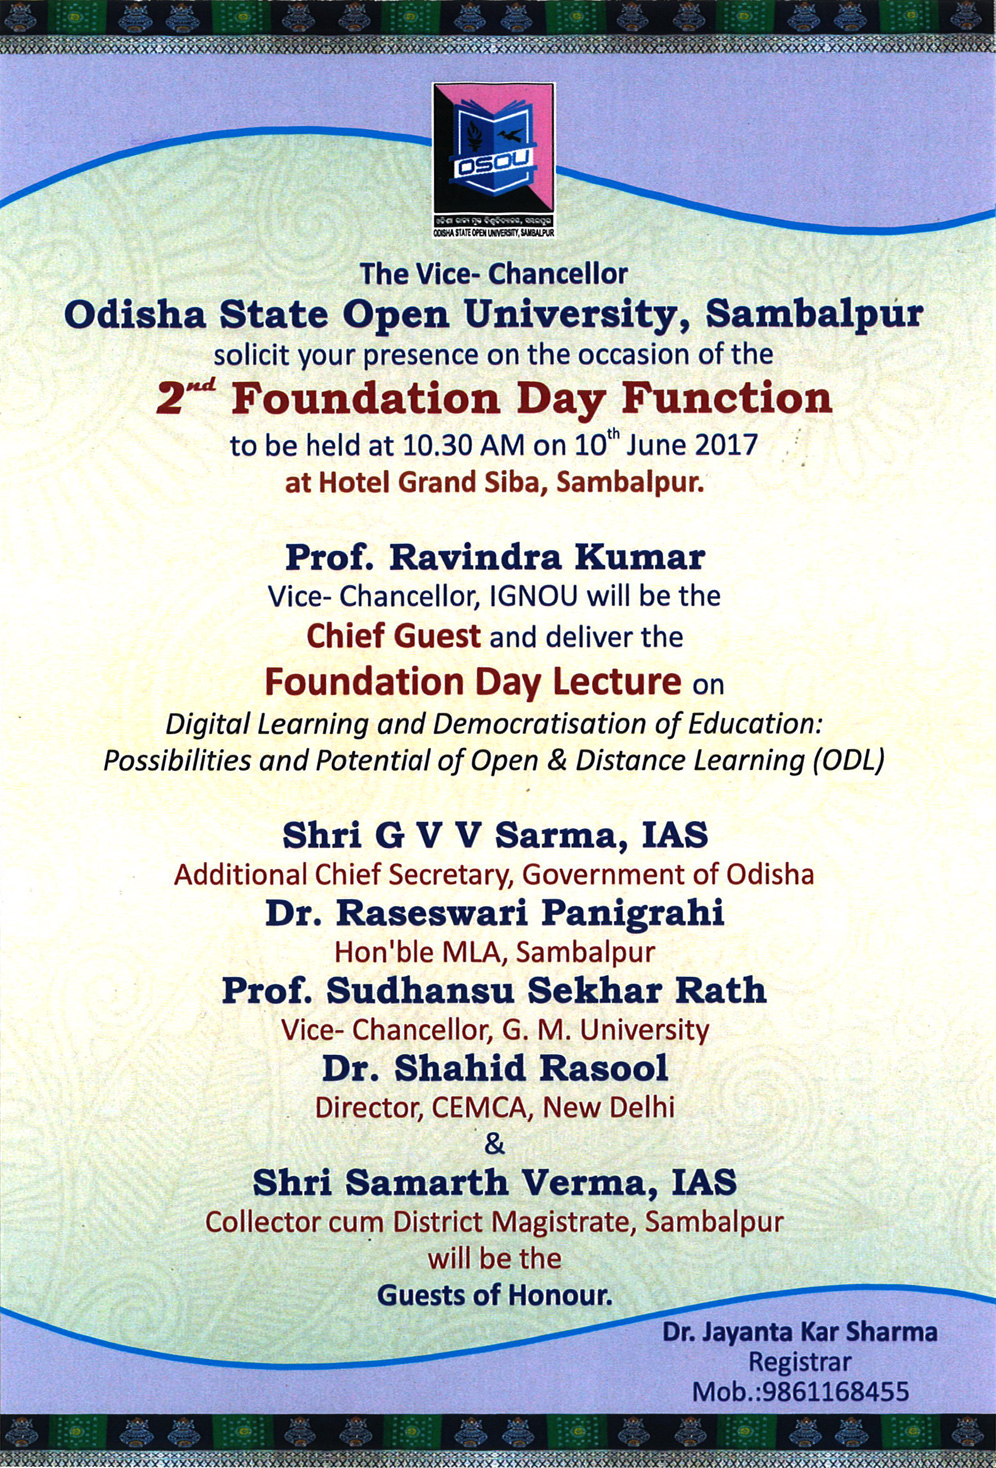 Invitation Card of 2nd Foundation Day Function of OSOU